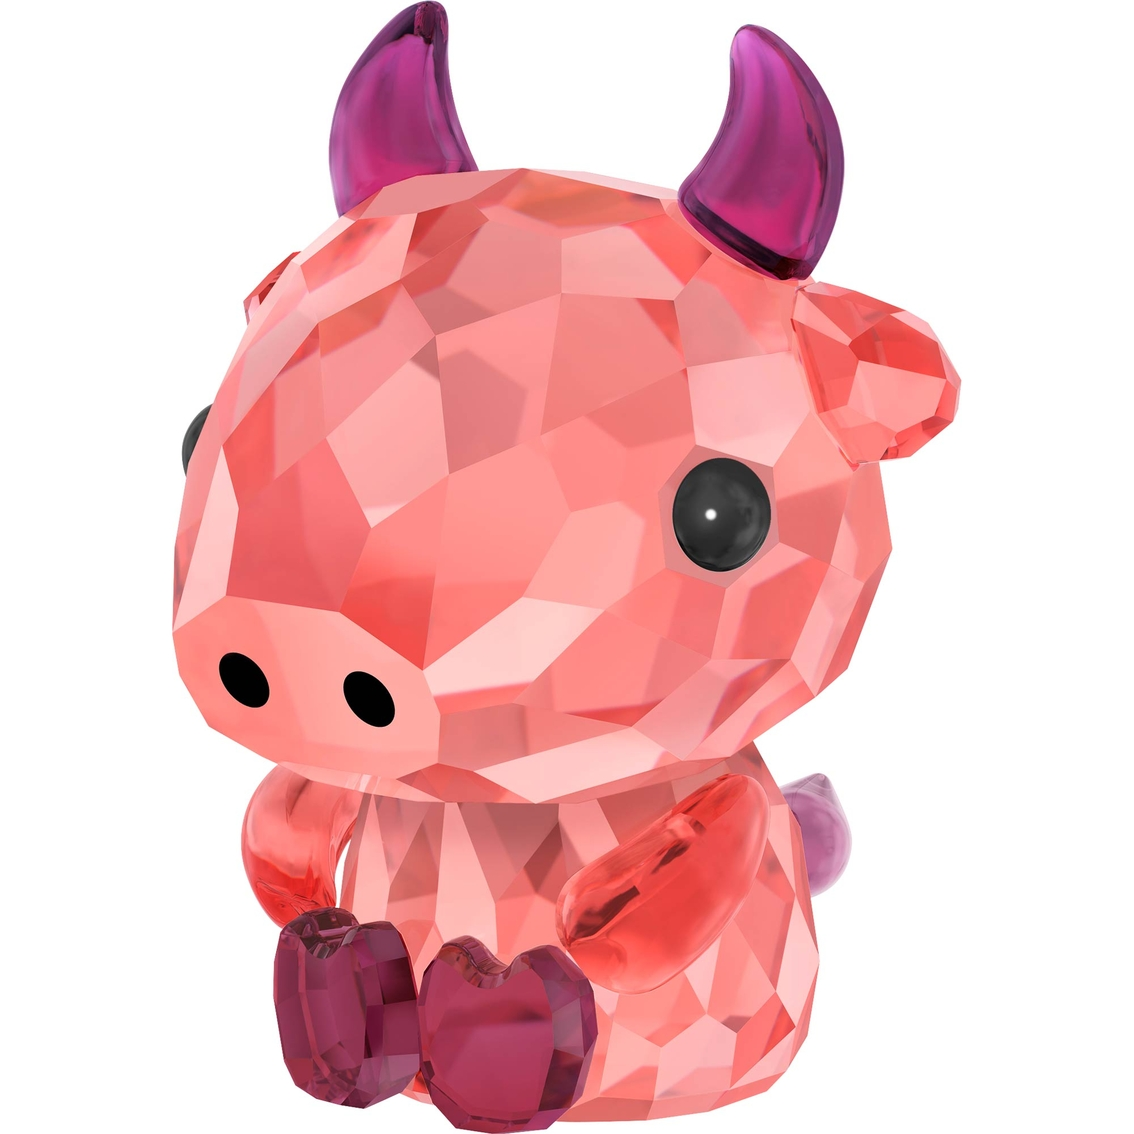 d20fa5d2a Swarovski Chinese Zodiac Dependable Ox | Collectible Figurines ...